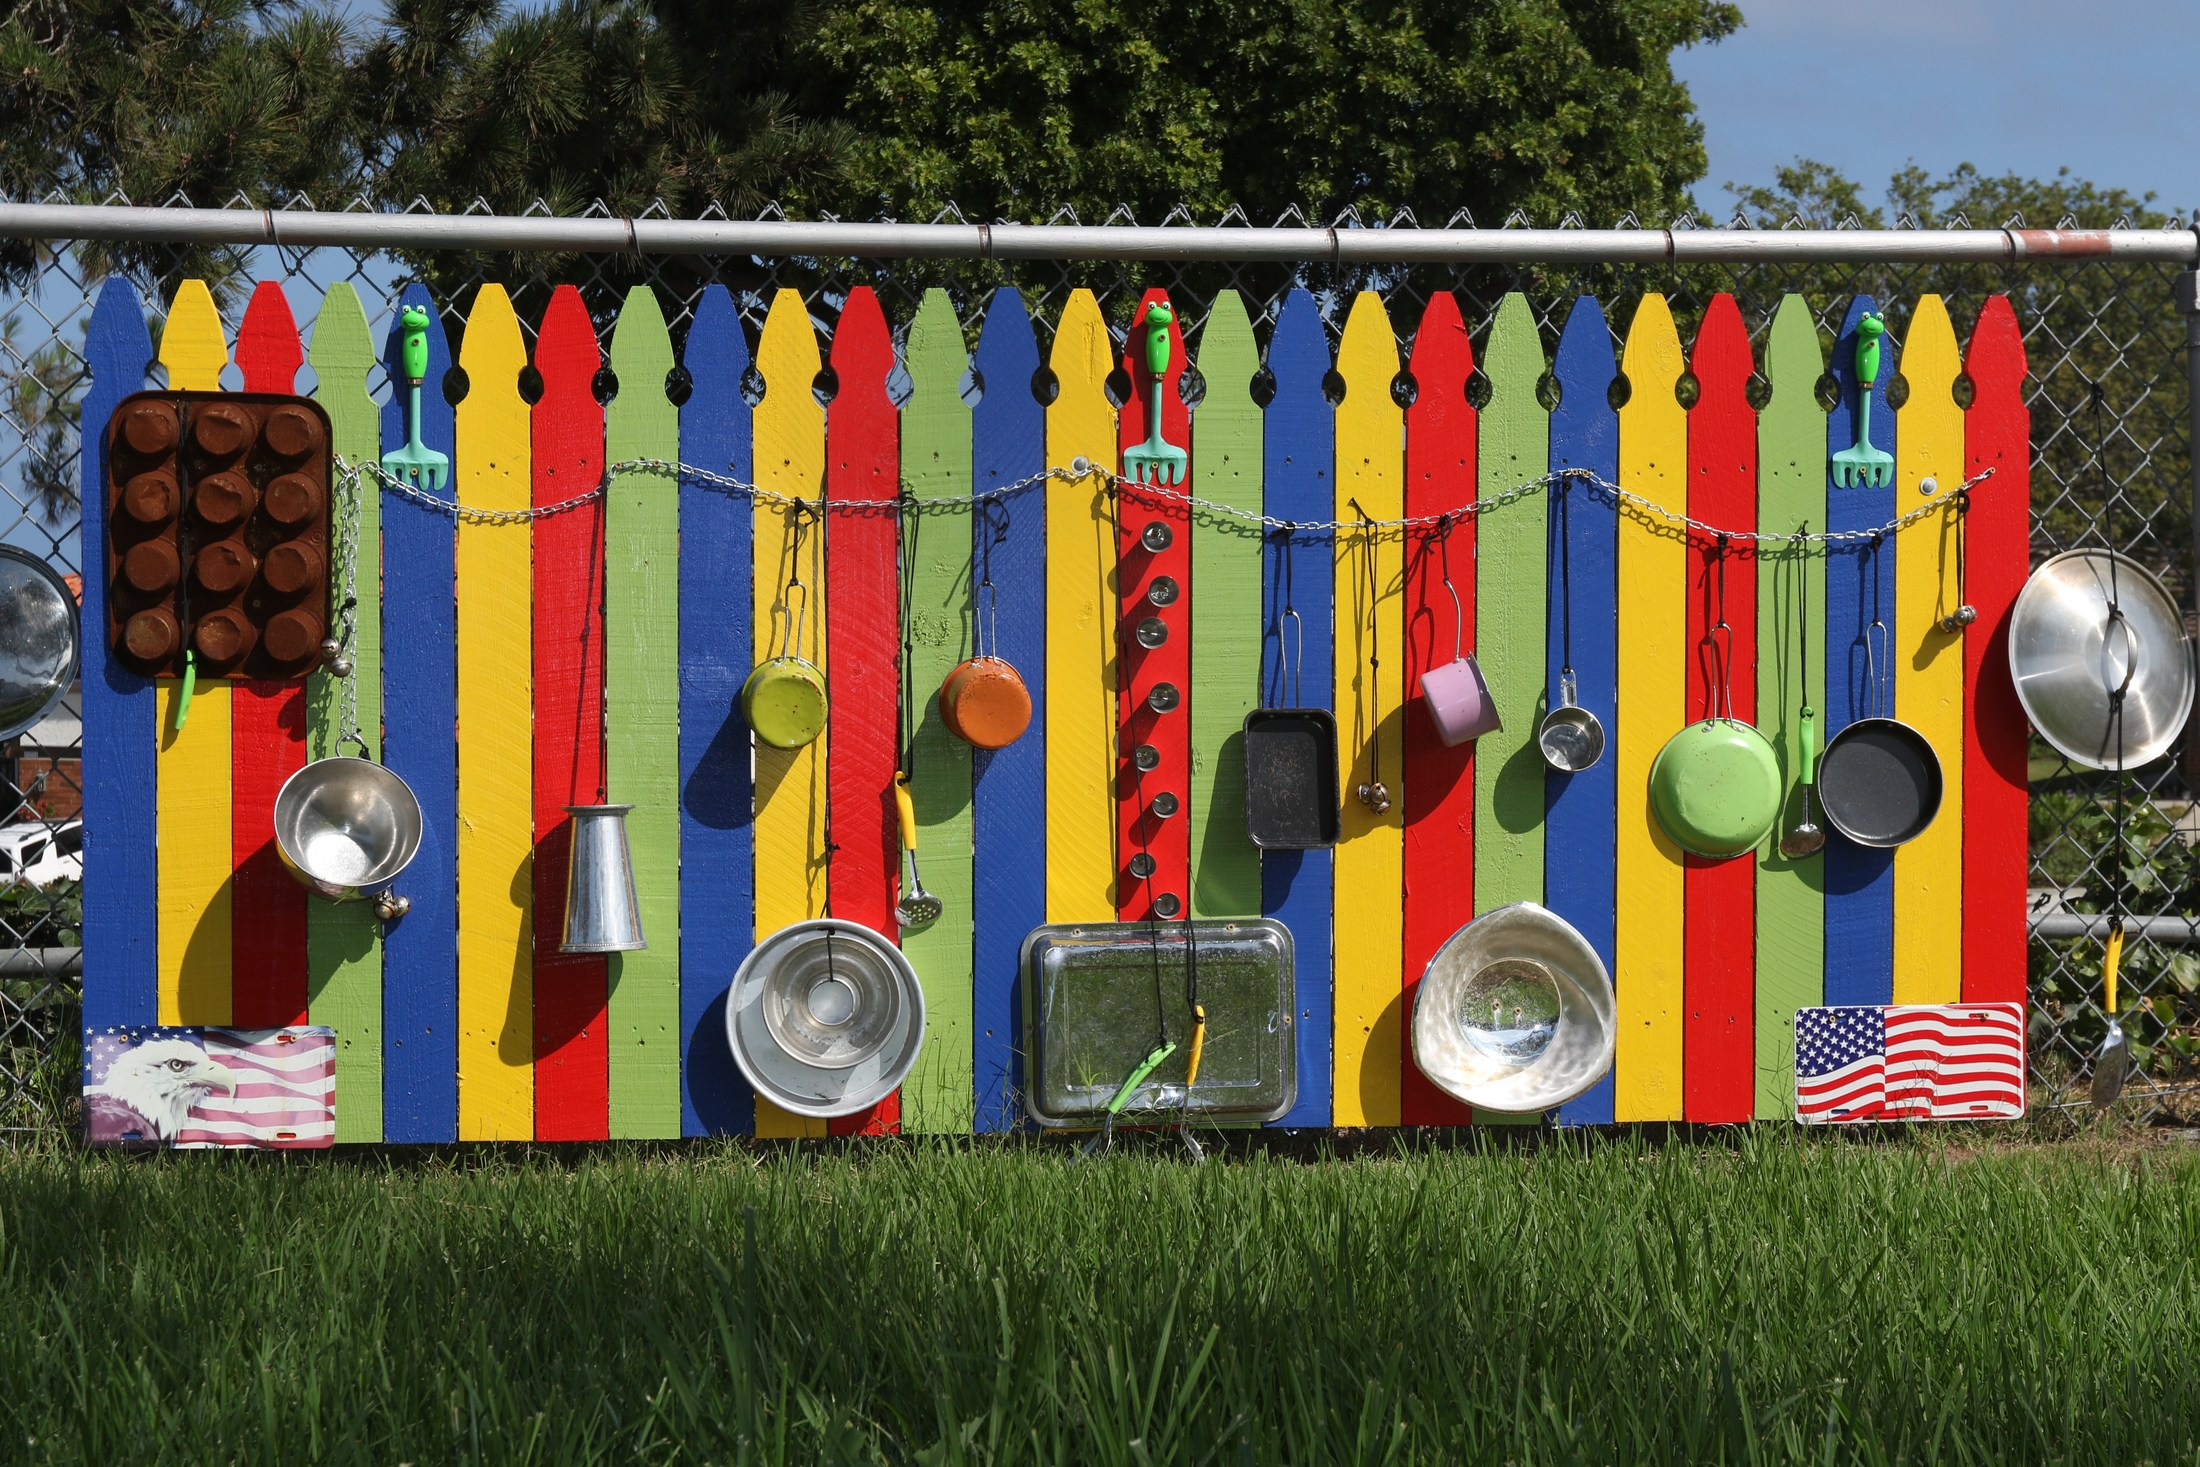 multi-colored fence with playthings attached